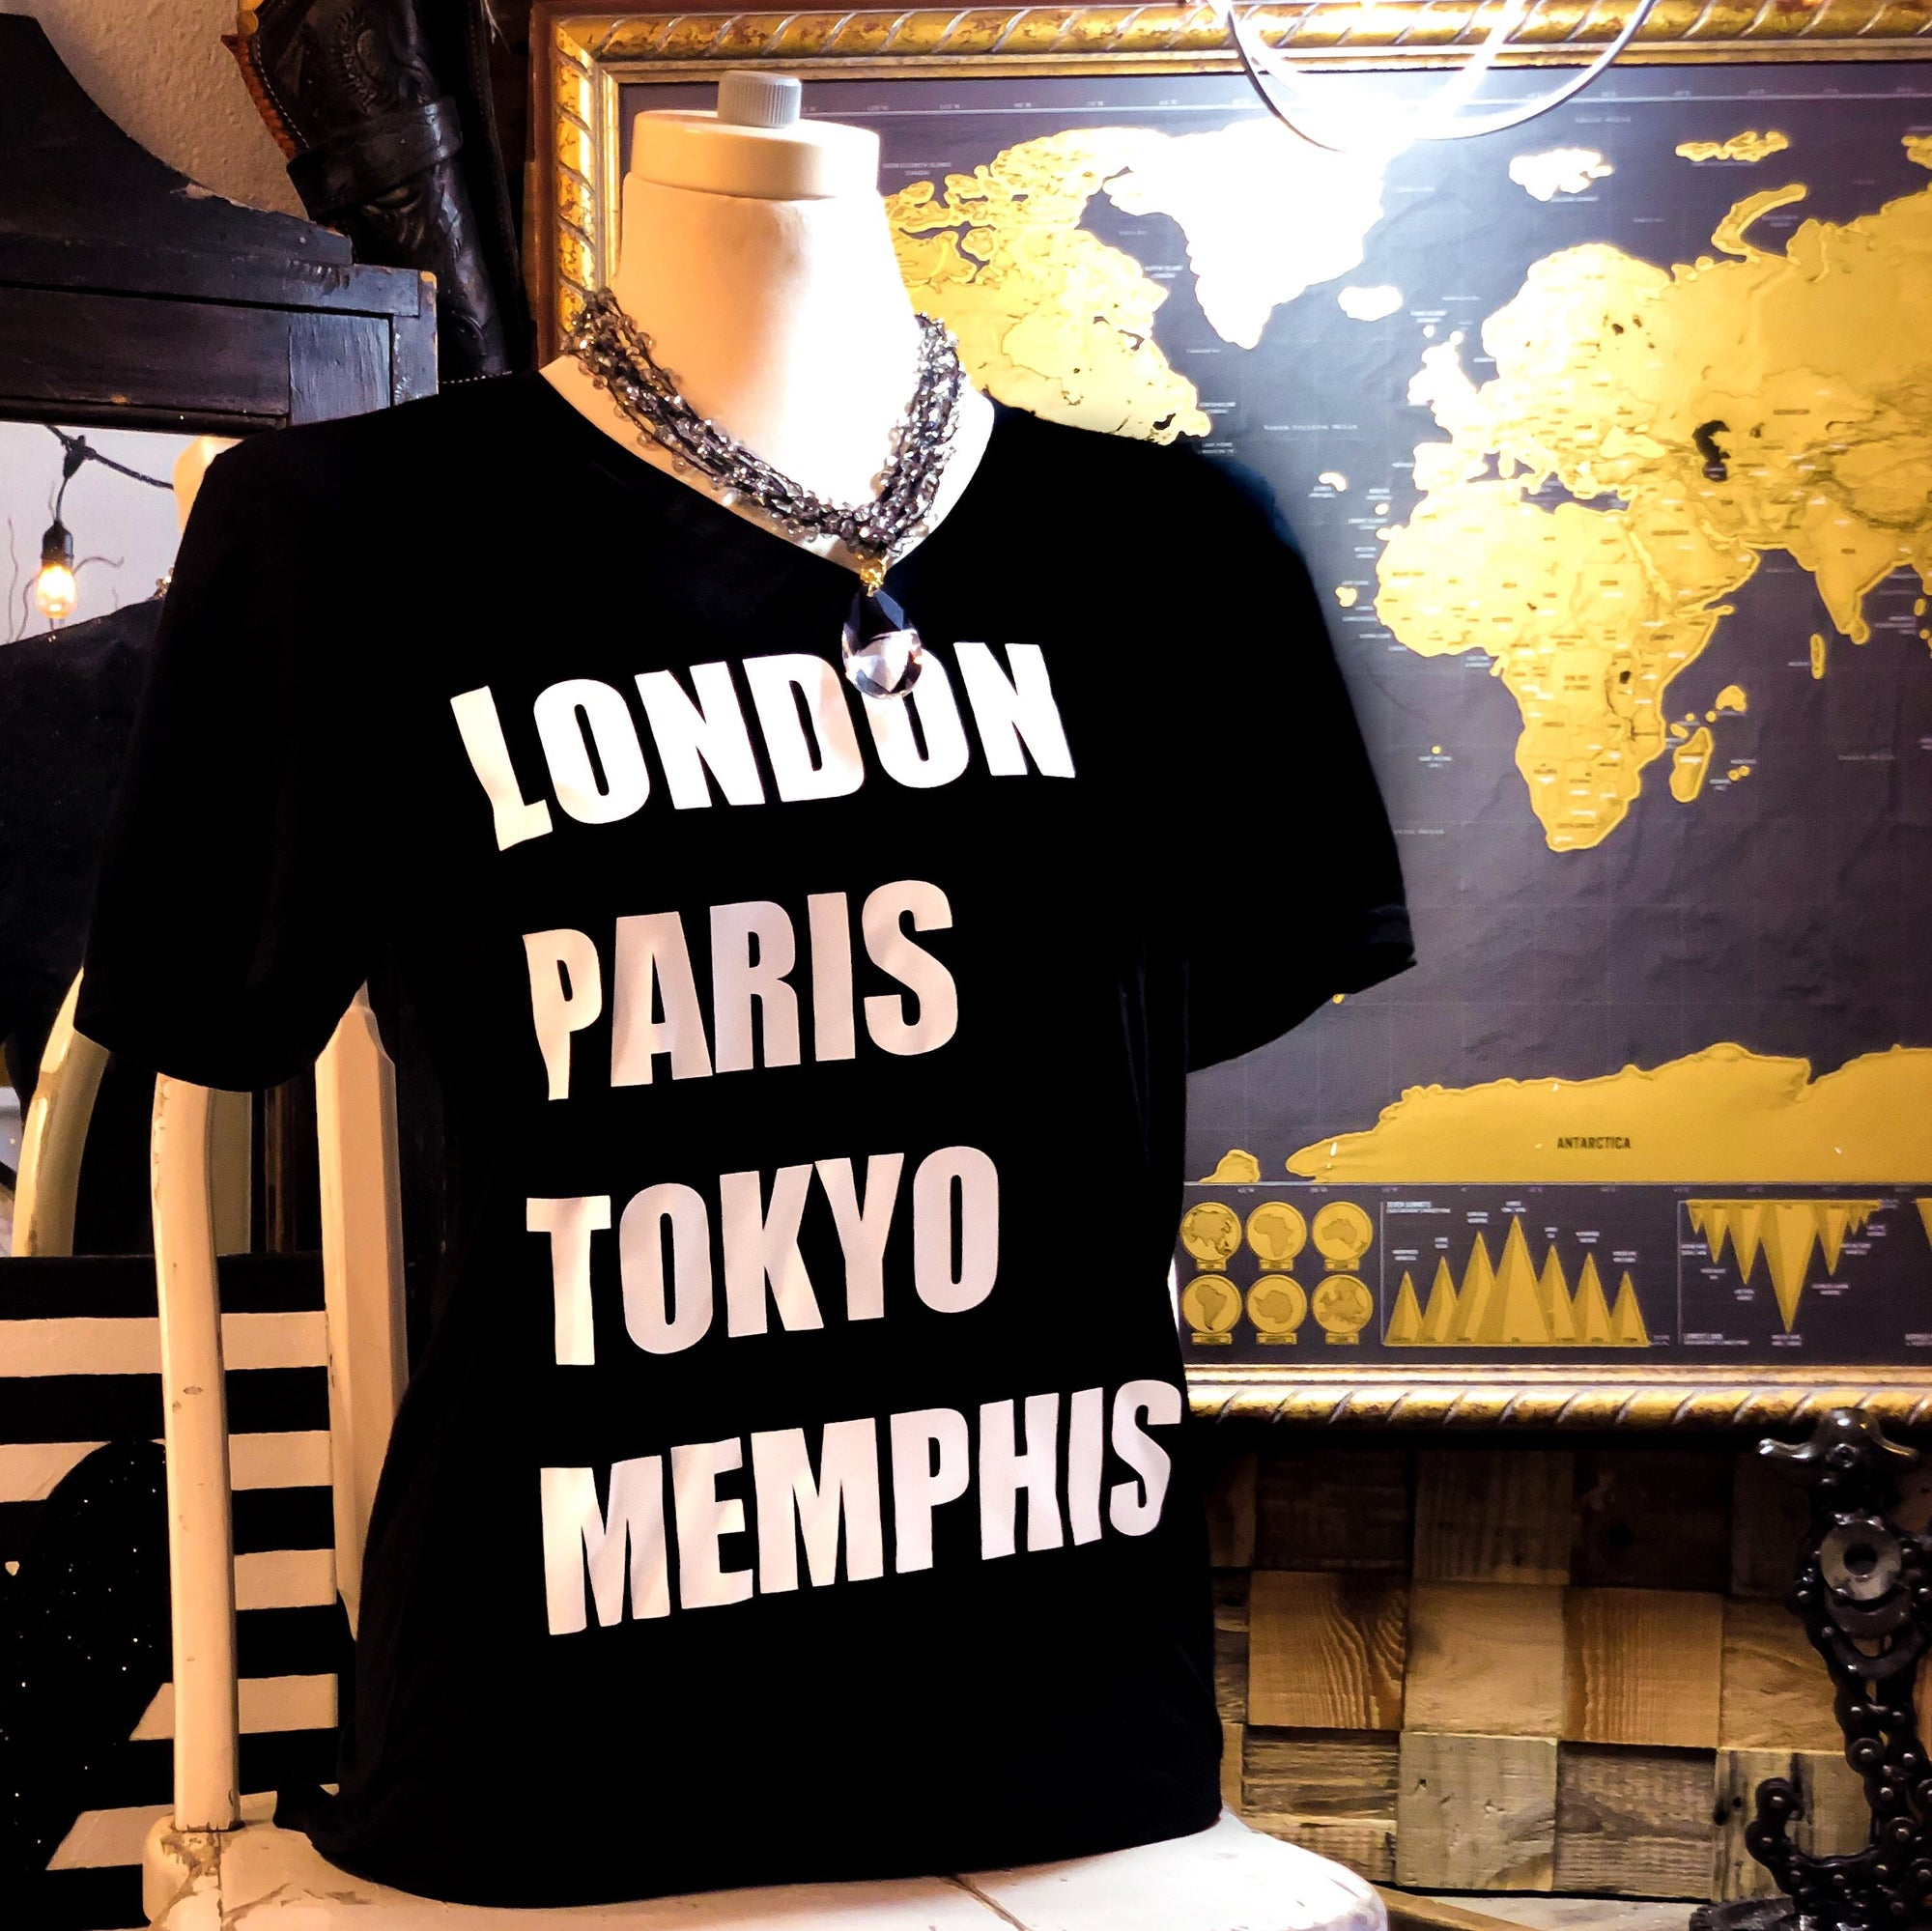 Buy The London Paris Tokyo Memphis V-Neck T-Shirt from Walking Pants Curiosities, the Most un-General Gift Store in Downtown Memphis, Tennessee!